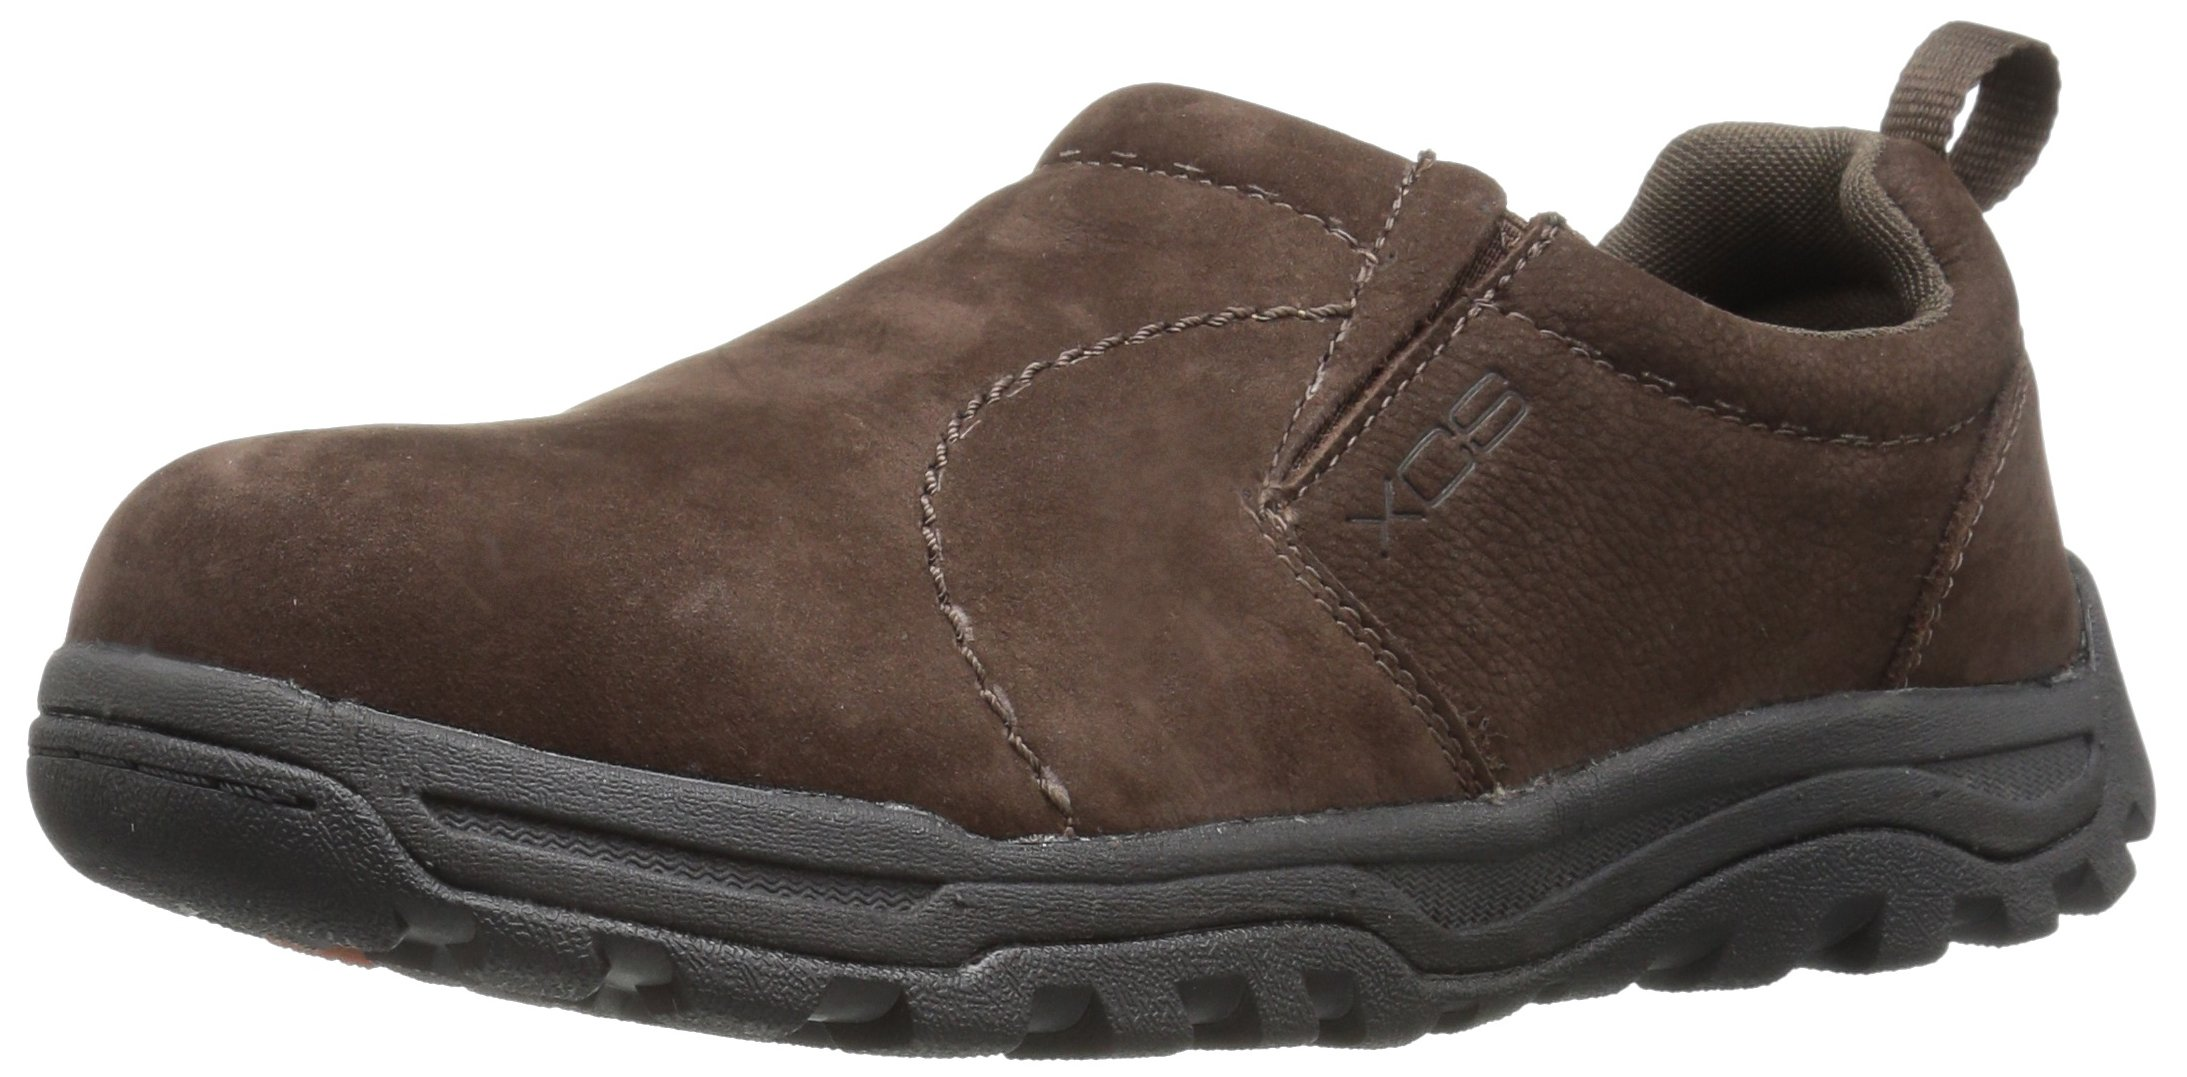 Rockport Work Men's Trail Technique RK6673 Industrial and Construction Shoe, Brown, 10 M US